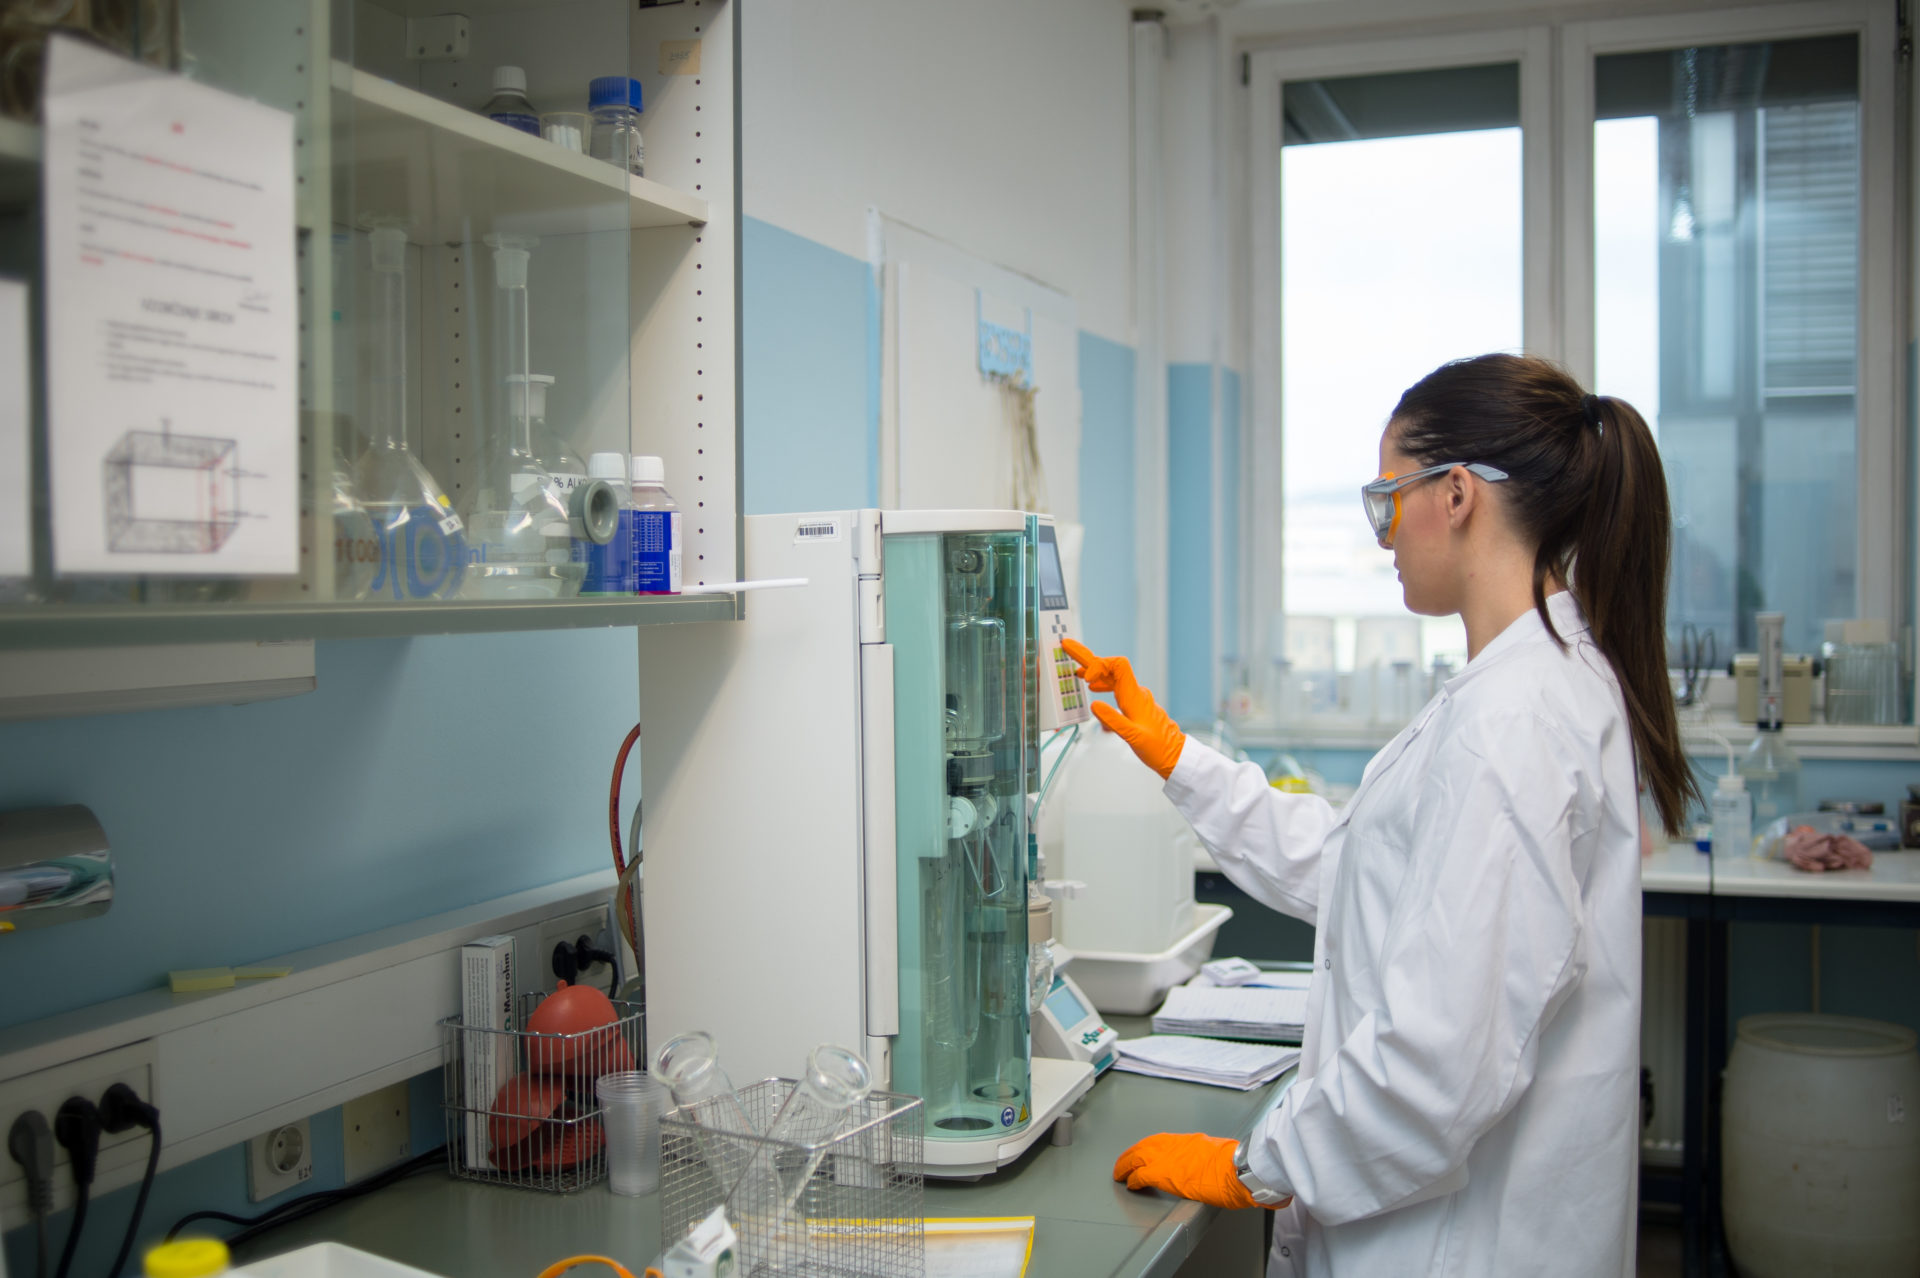 laboratorij22_anpe_261017